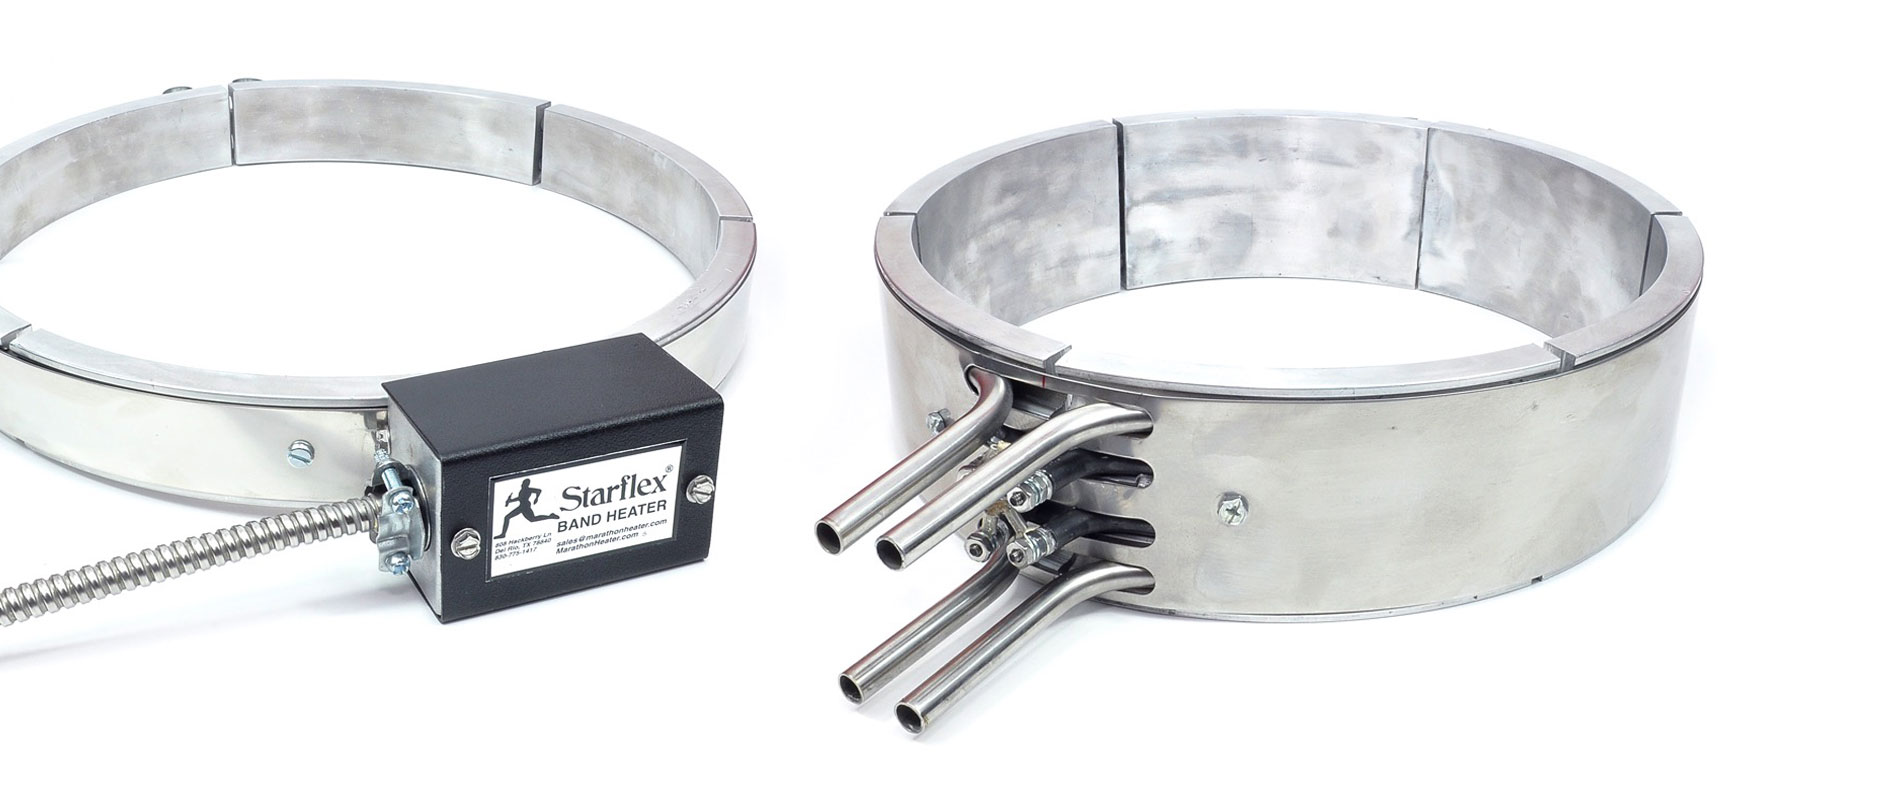 Starflex Band Heaters